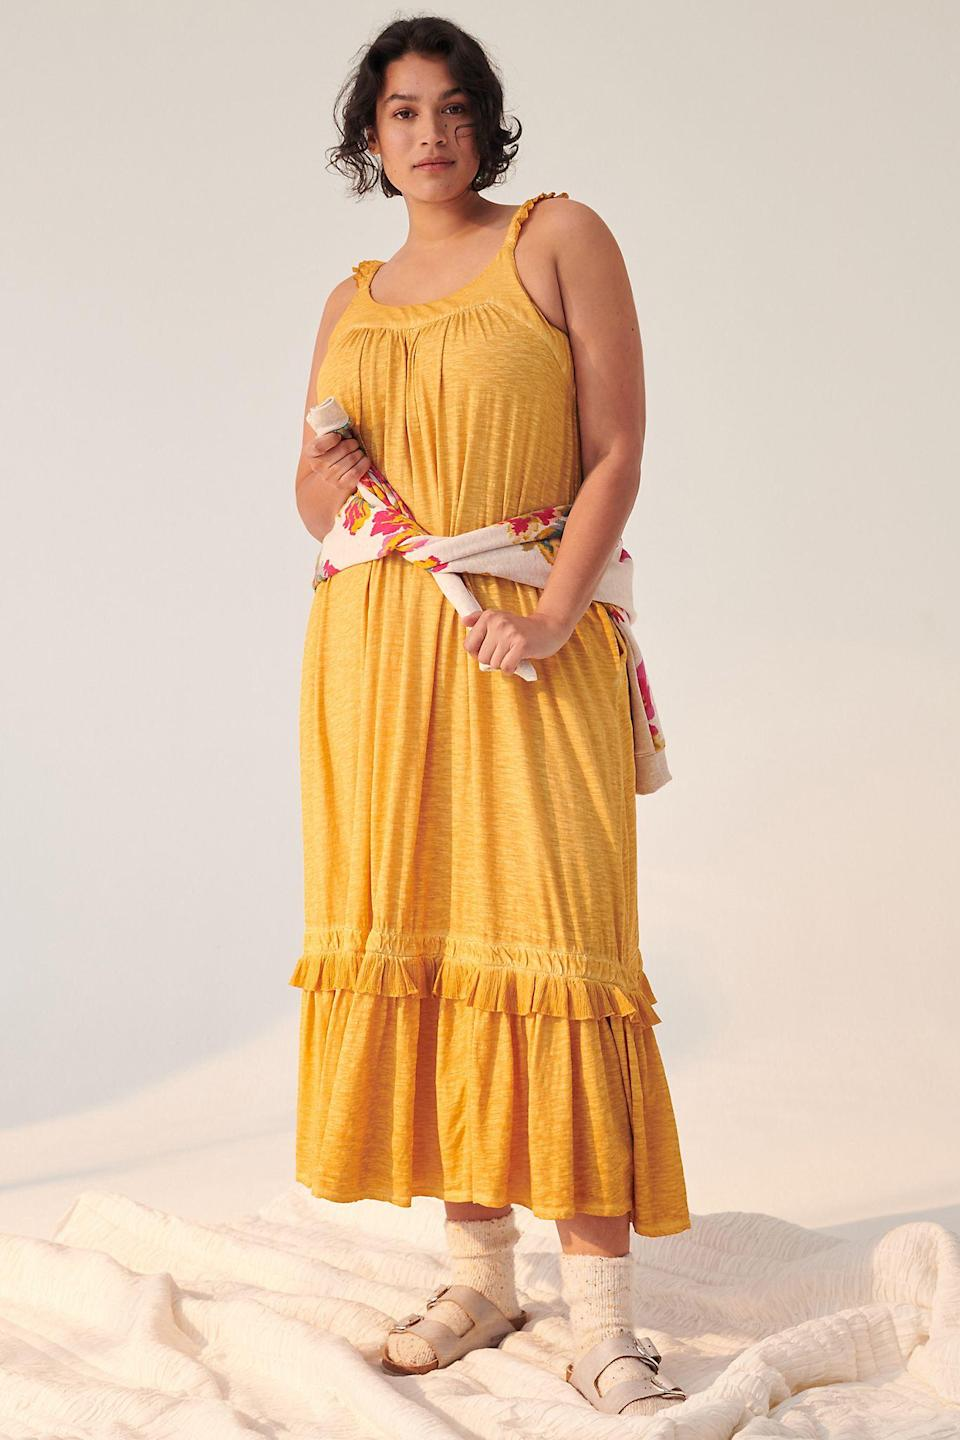 """<h2>Britt Tiered Midi Dress</h2><br><strong>Sizes Available: 1X-2X</strong><br><br><em>Shop <strong><a href=""""https://www.anthropologie.com/shop/britt-tiered-midi-dress?category=plus-size-dresses&color=070&type=PLUS&viewcode=c&quantity=1"""" rel=""""nofollow noopener"""" target=""""_blank"""" data-ylk=""""slk:Anthropologie"""" class=""""link rapid-noclick-resp"""">Anthropologie</a></strong></em><br><br><strong>Saturday/Sunday</strong> Britt Tiered Midi Dress, $, available at <a href=""""https://go.skimresources.com/?id=30283X879131&url=https%3A%2F%2Fwww.anthropologie.com%2Fshop%2Fbritt-tiered-midi-dress"""" rel=""""nofollow noopener"""" target=""""_blank"""" data-ylk=""""slk:Anthropologie"""" class=""""link rapid-noclick-resp"""">Anthropologie</a>"""